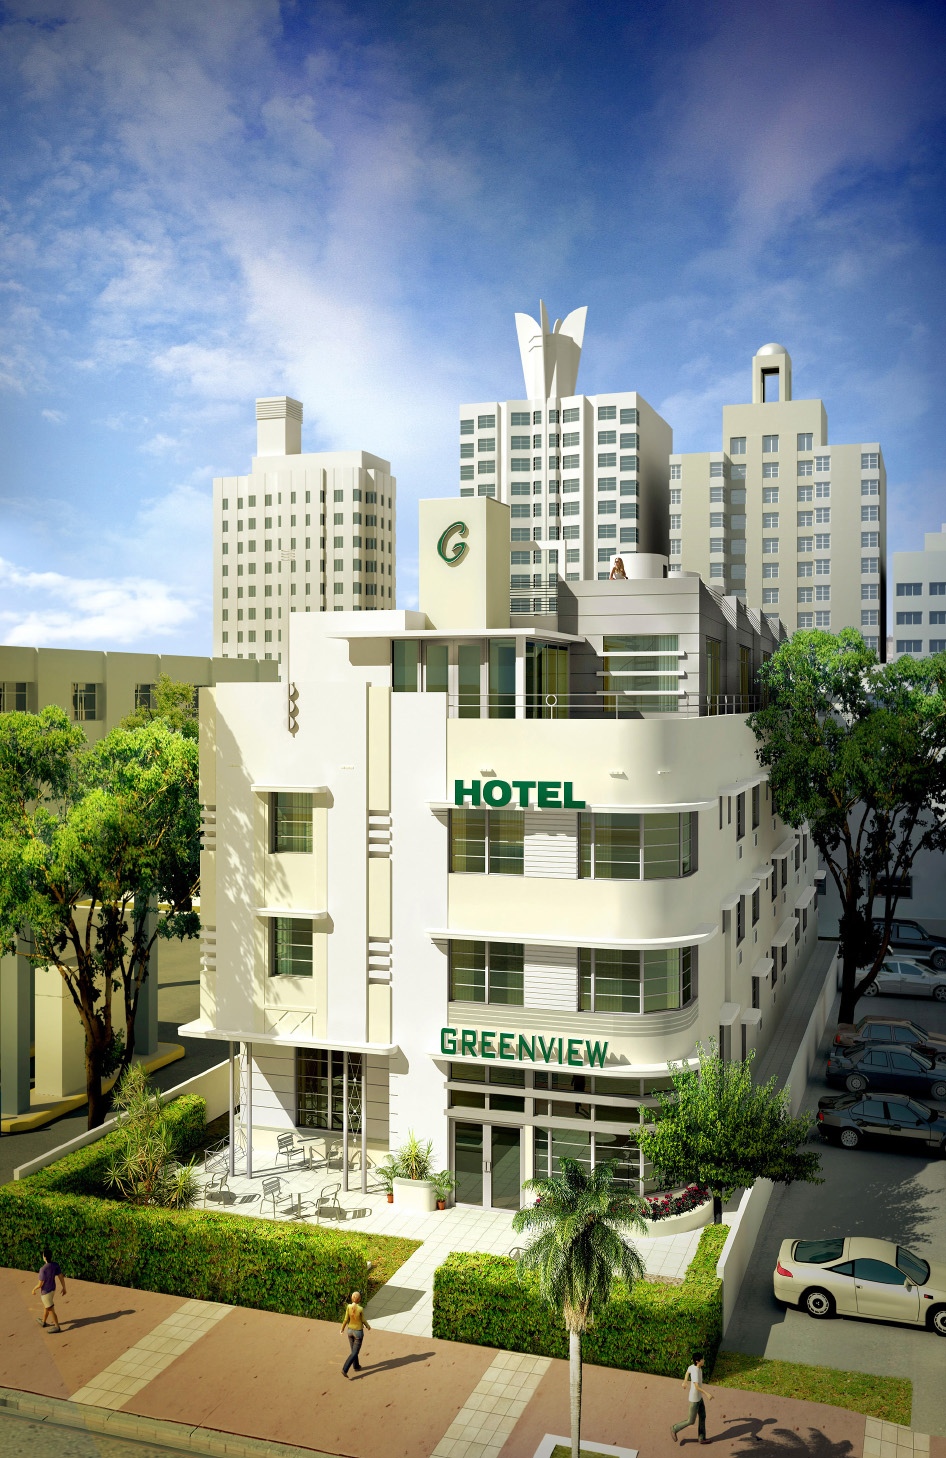 Greenview Hotel Rendering.jpg